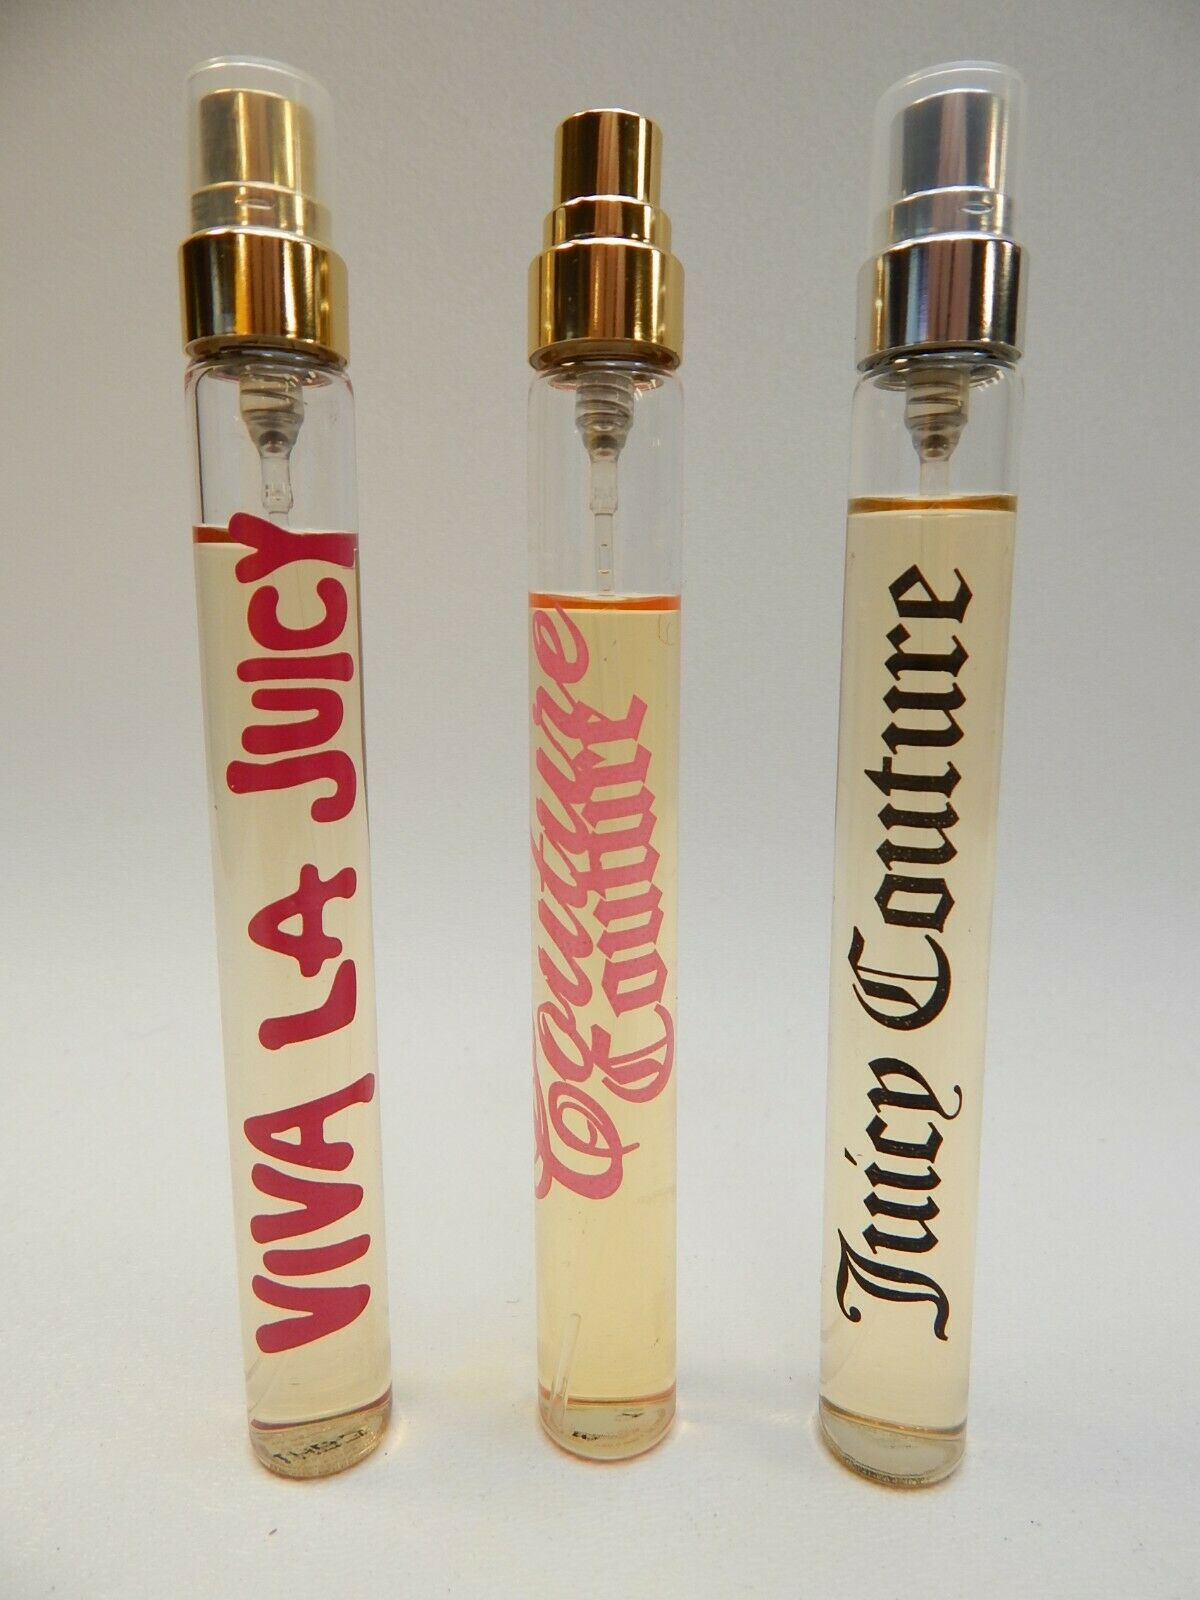 VIVA LA JUICY BY JUICY COUTURE 10ml Red Giorgio Beverly Hills Perfume Lot USED